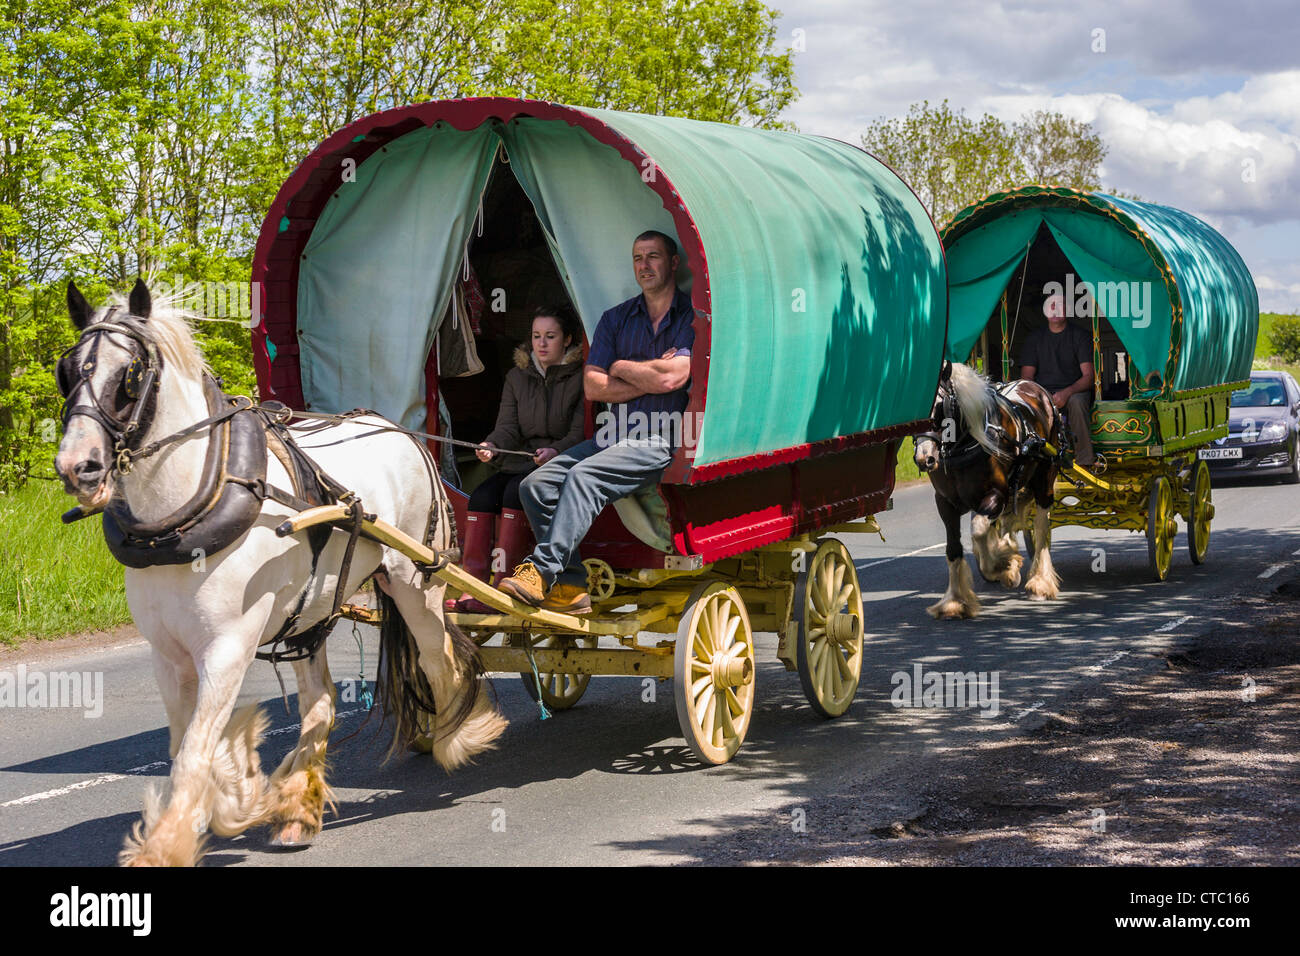 Gypsy caravan, Wharfedale, Yorkshire - Stock Image